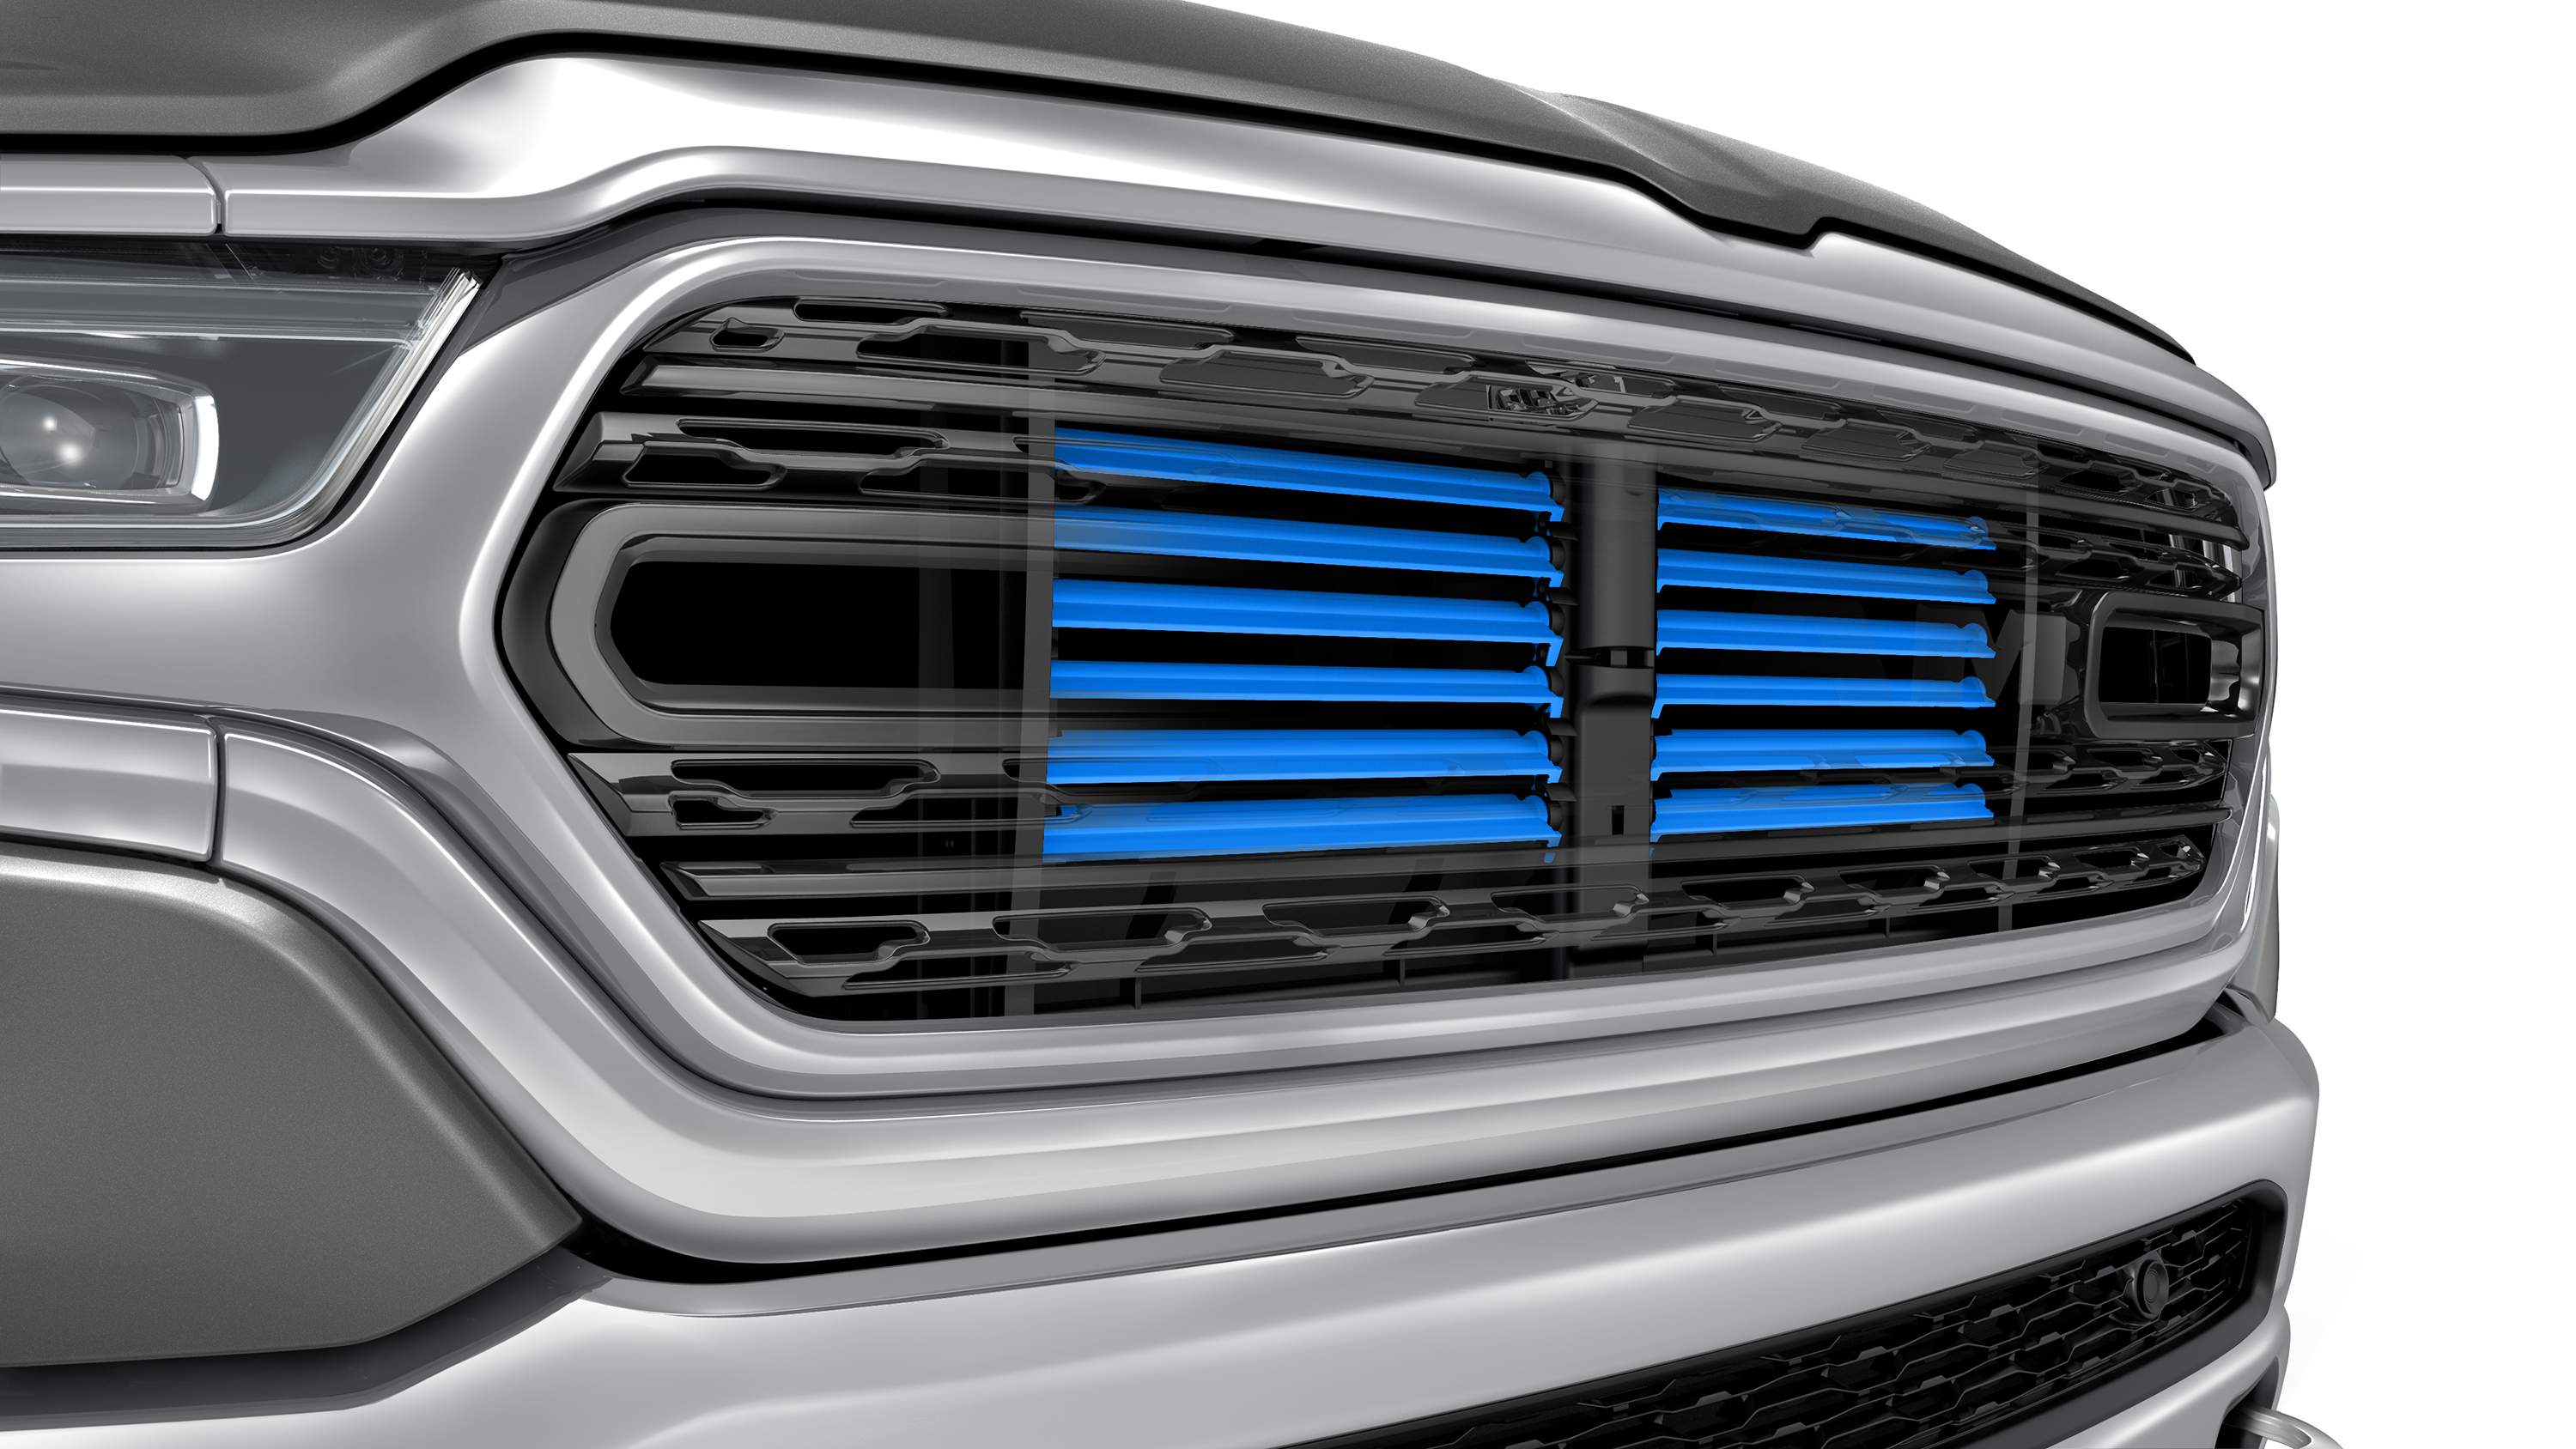 2019 Ram 1500 Aerothermal Manager Marc Babich Said In An Fca Video That The Oem Moved Active Shutters Closer To Grille Truck For Better